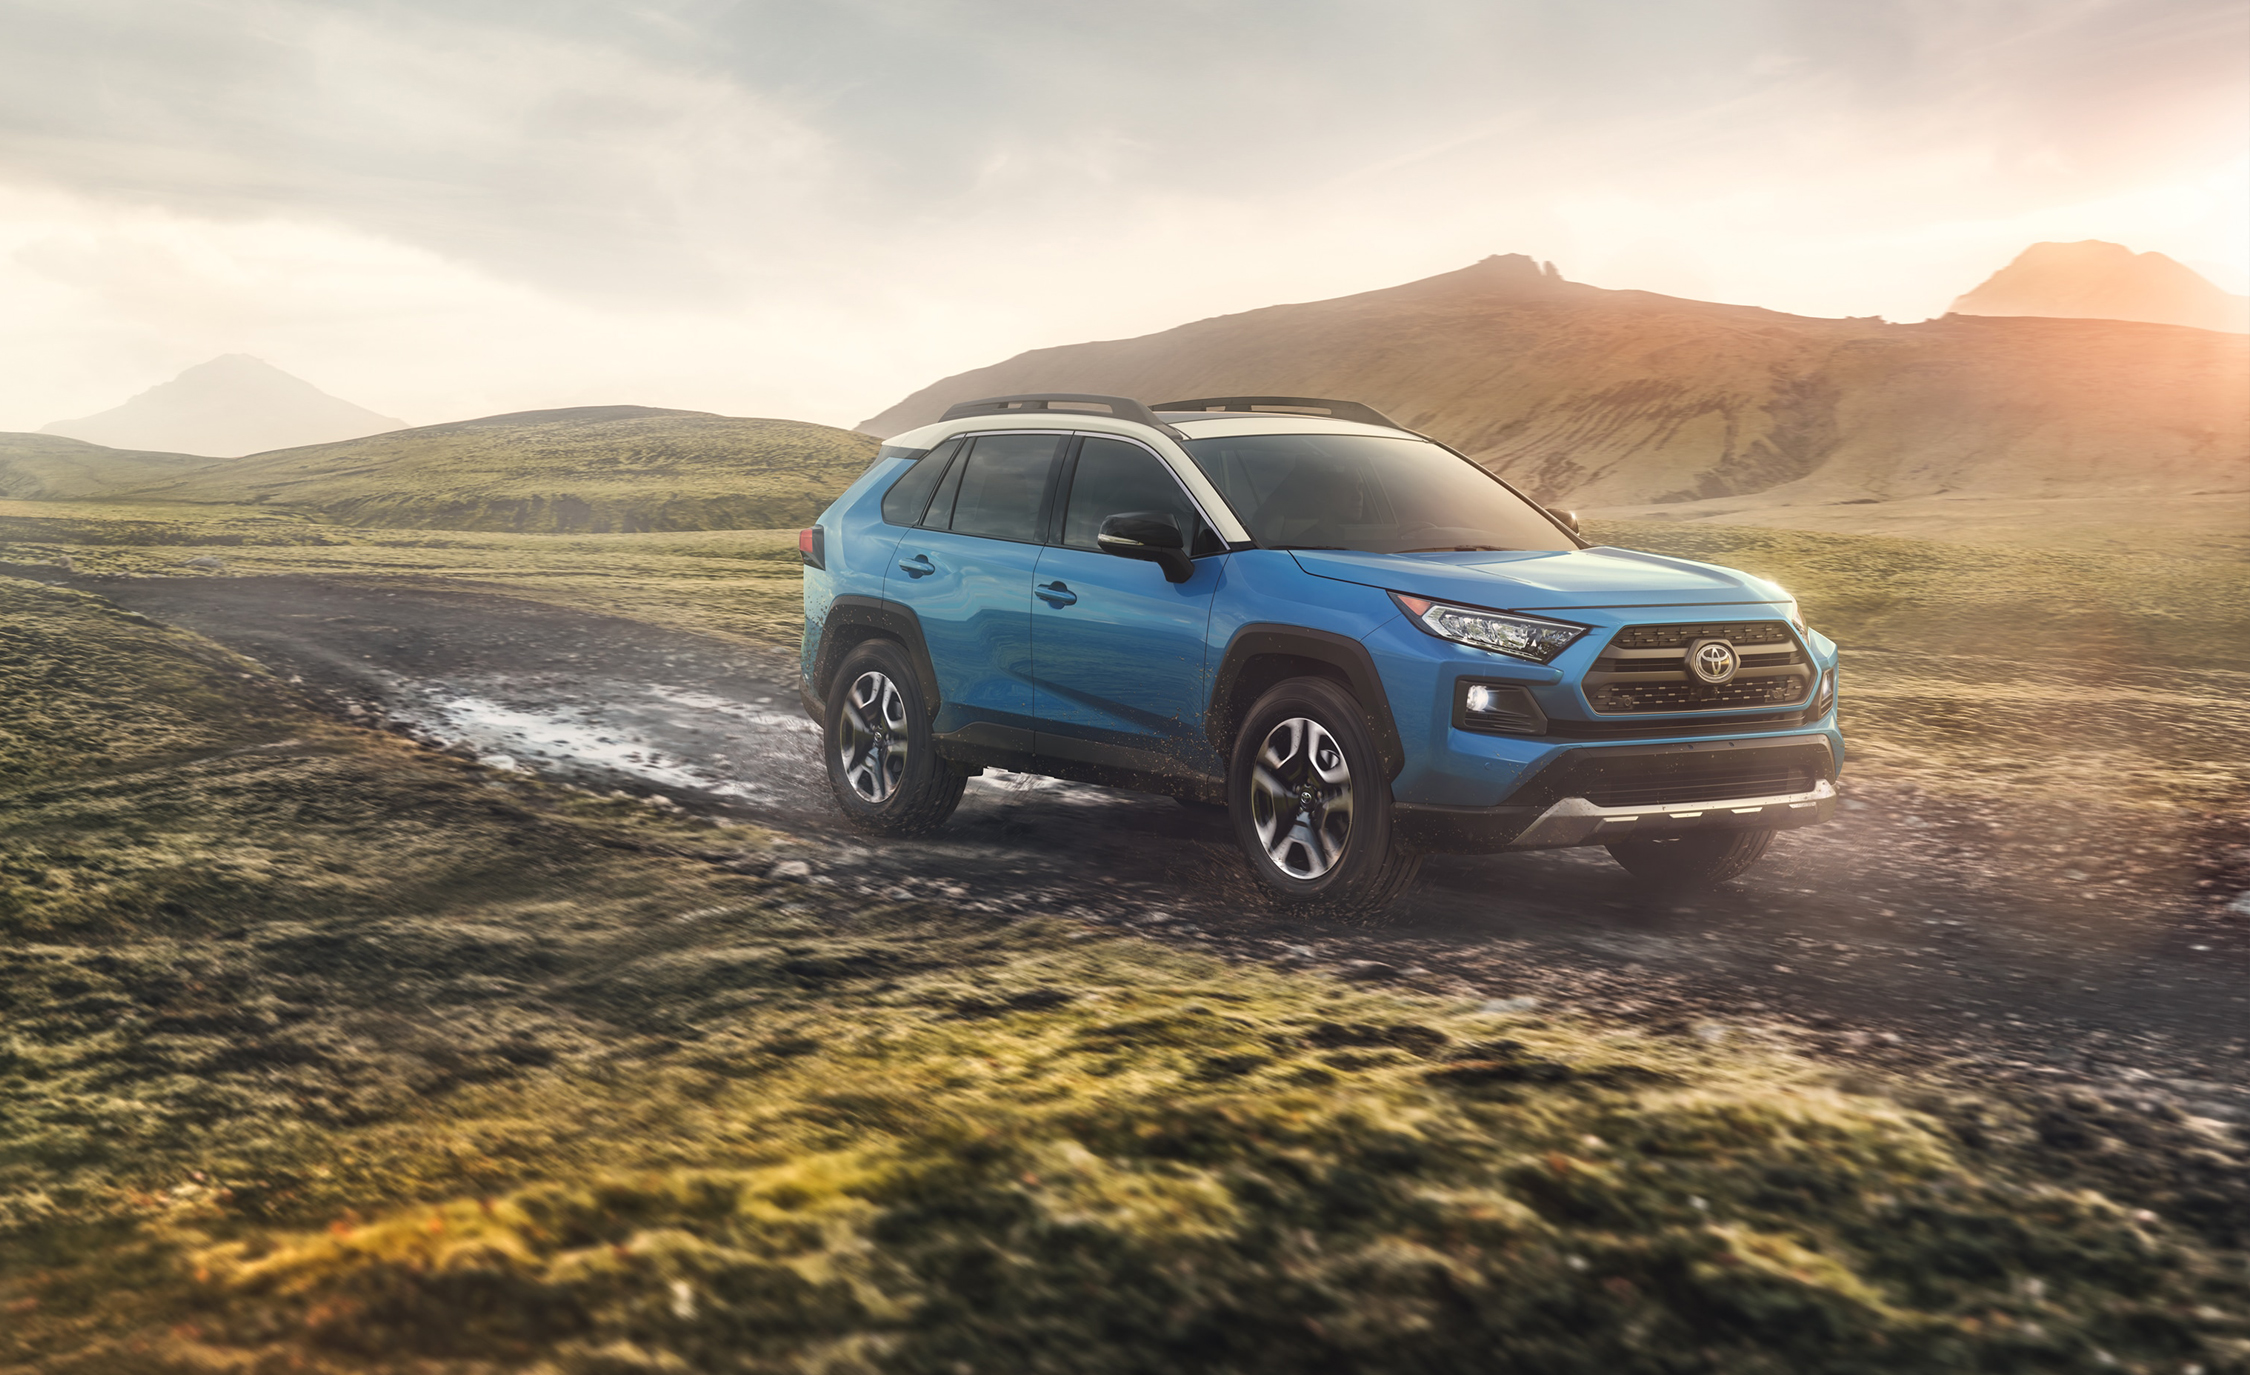 All Black 4runner >> 2019 Toyota RAV4: Everything You Need to Know About the New Model | GearOpen